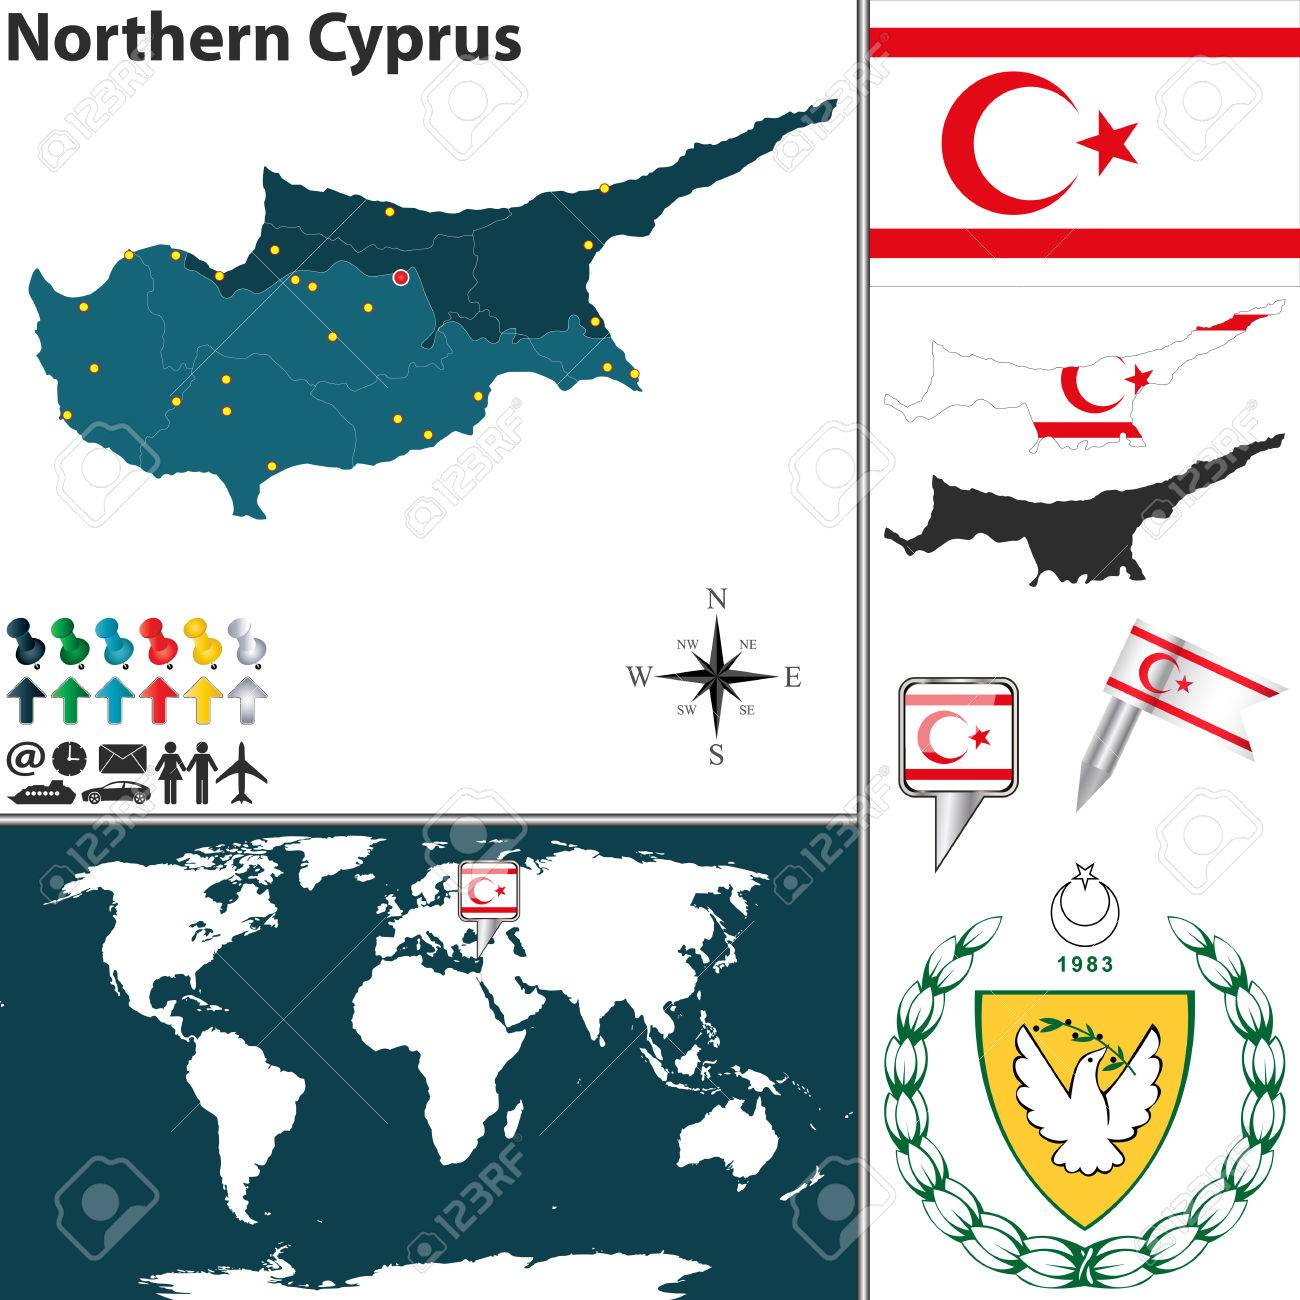 Map Of Northern Cyprus With Regions Coat Of Arms And Location - Northern cyprus map